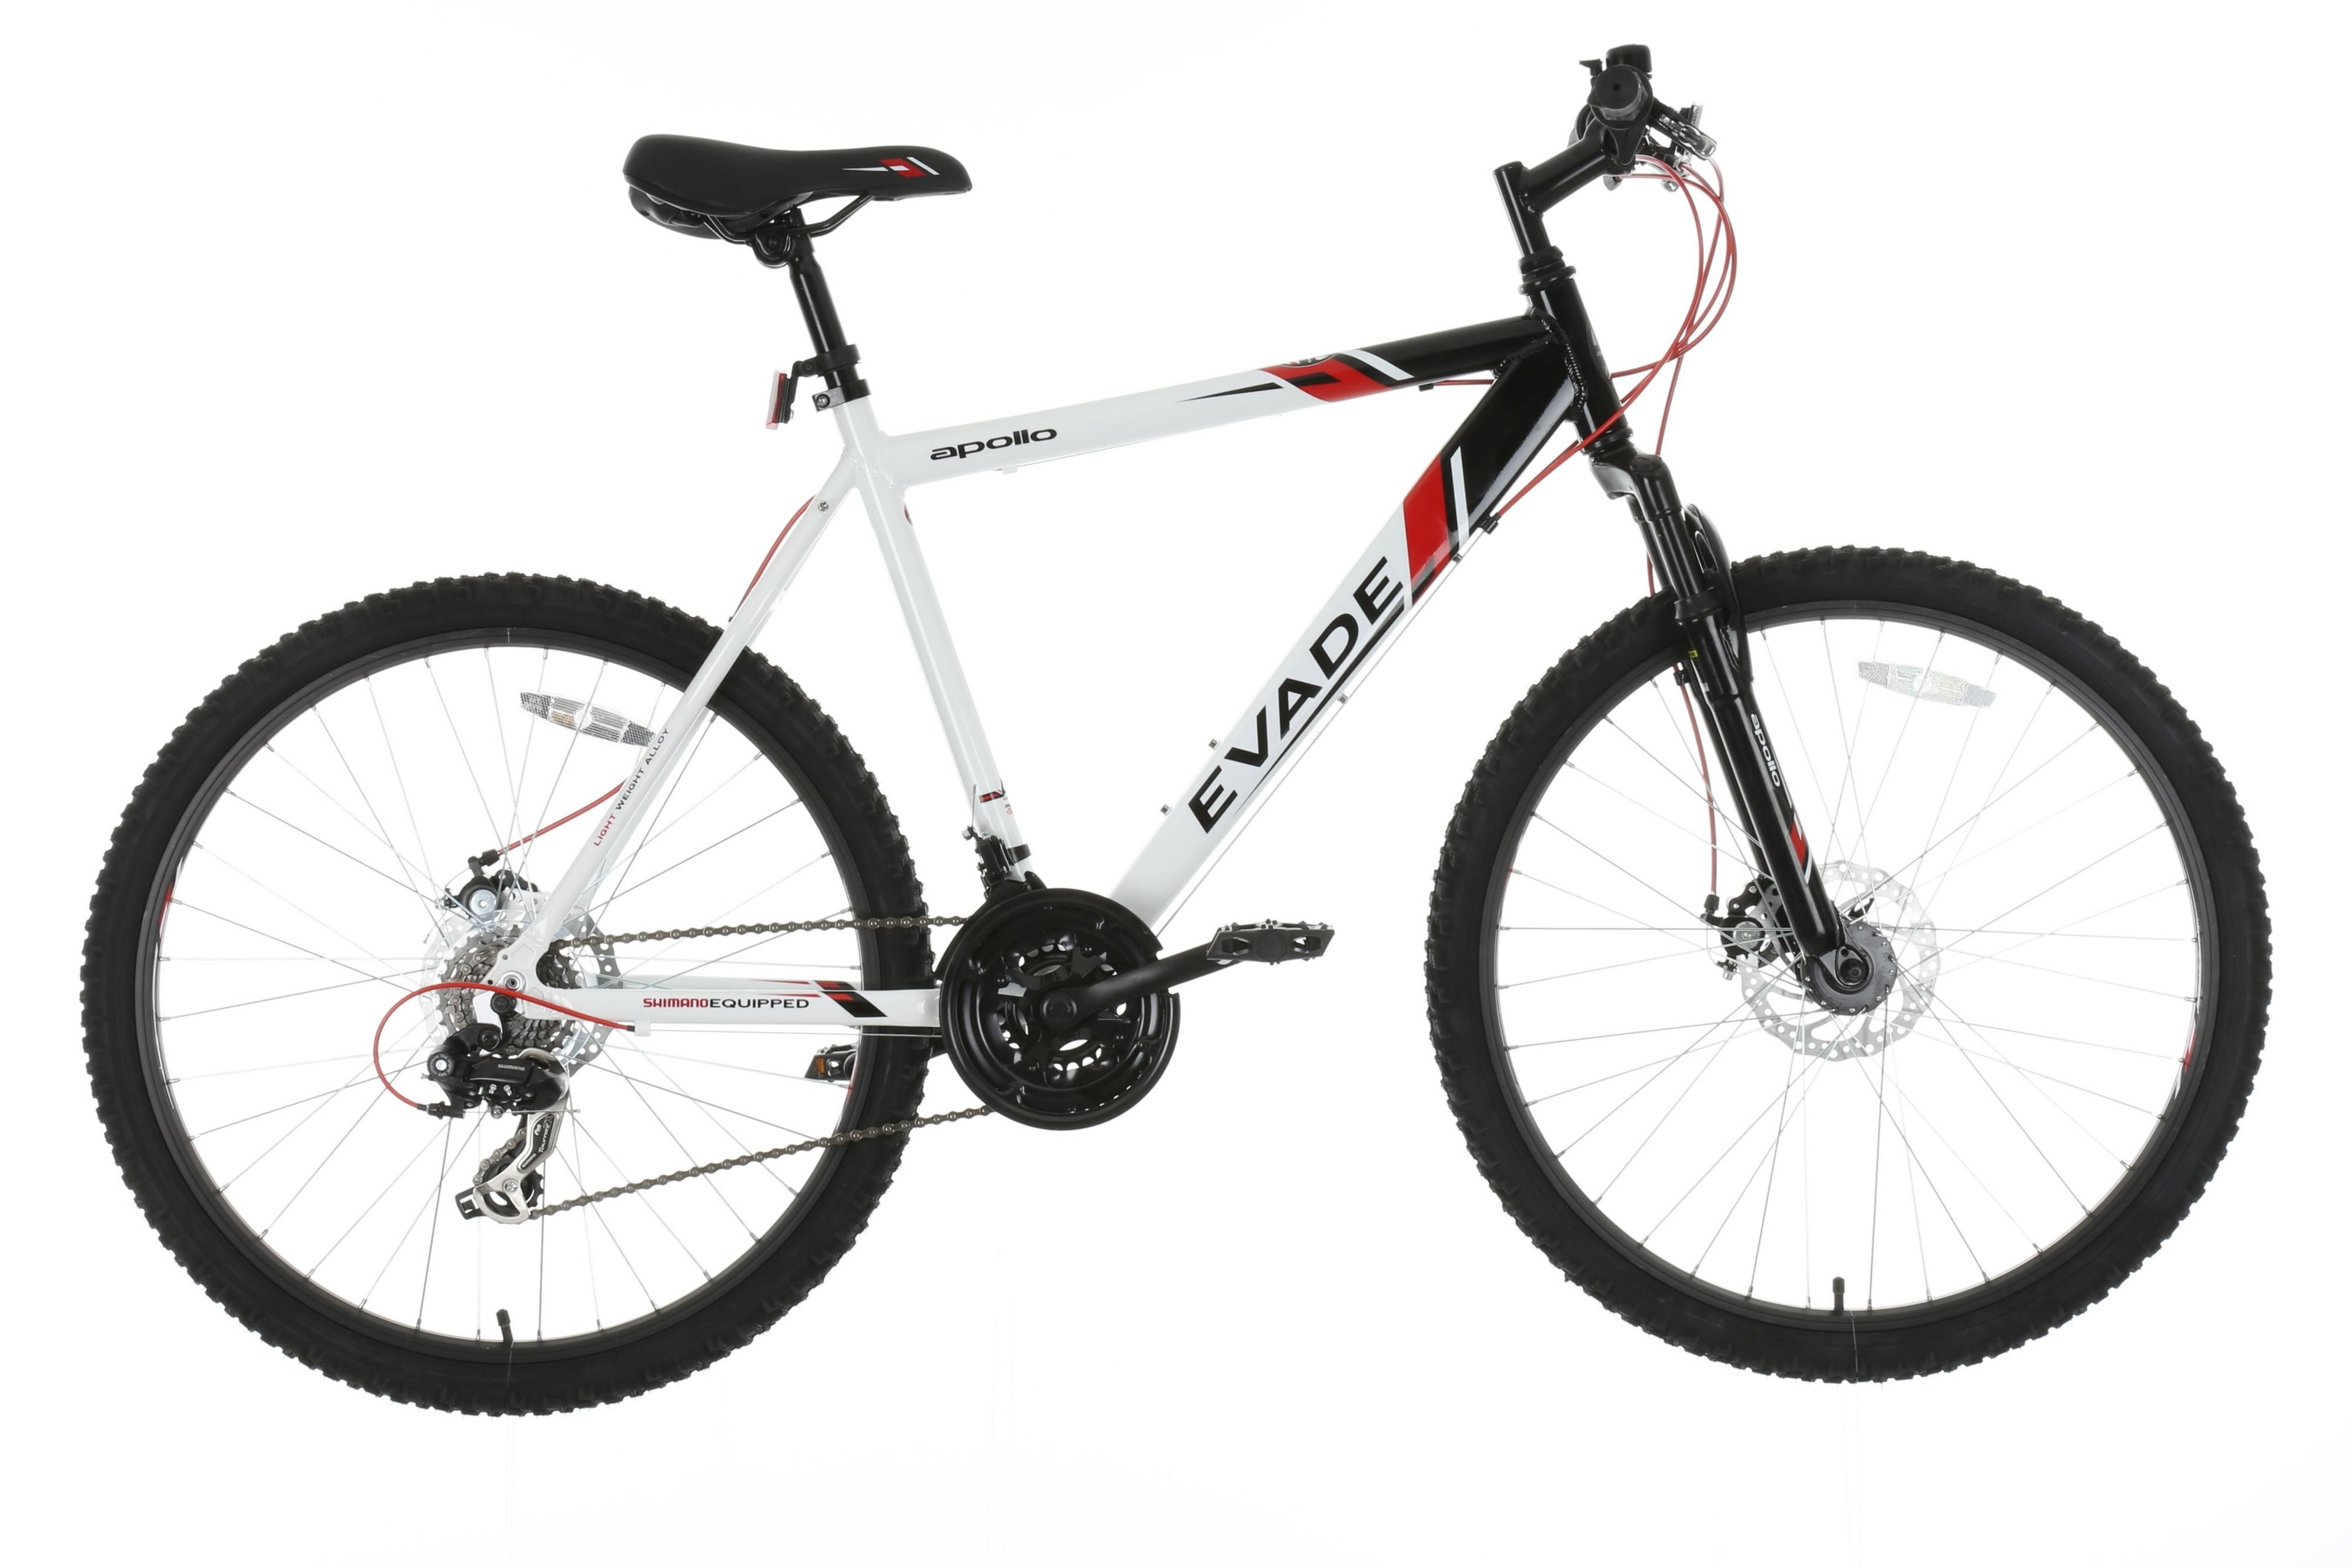 The Apollo Evade Mens Mountain Bike Offers Great Performance On